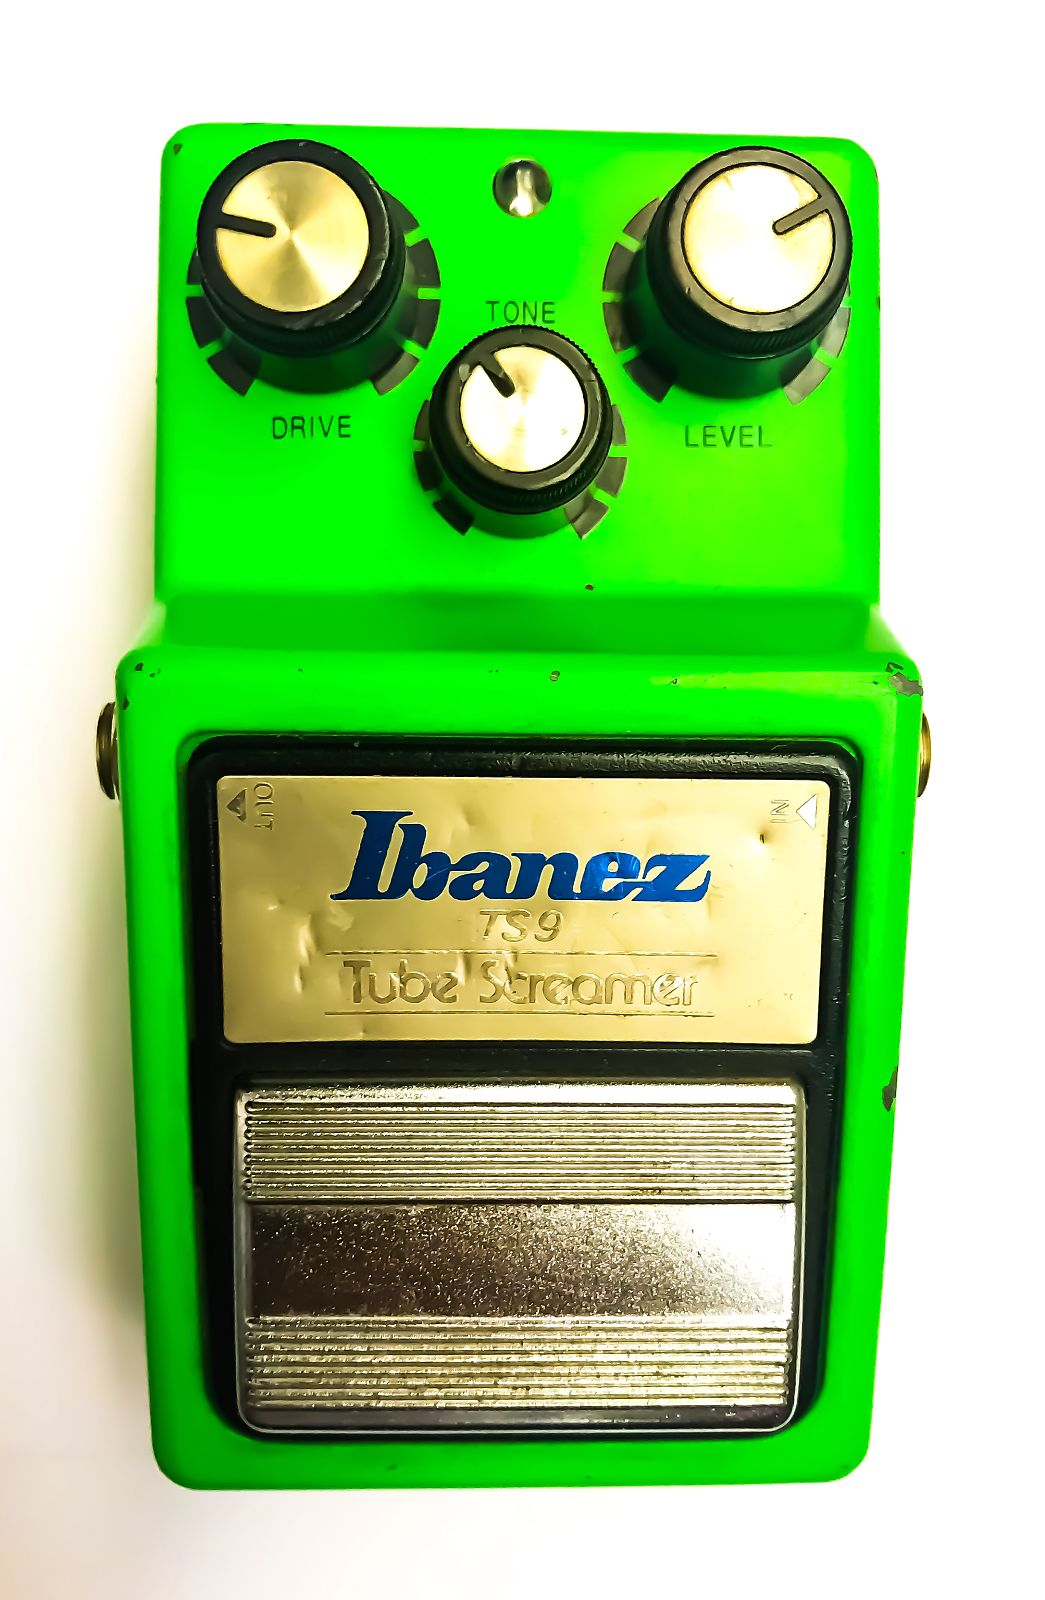 Ibanez Tube Screamer TS9 80s, 1983/1984 Green/Verde & metal